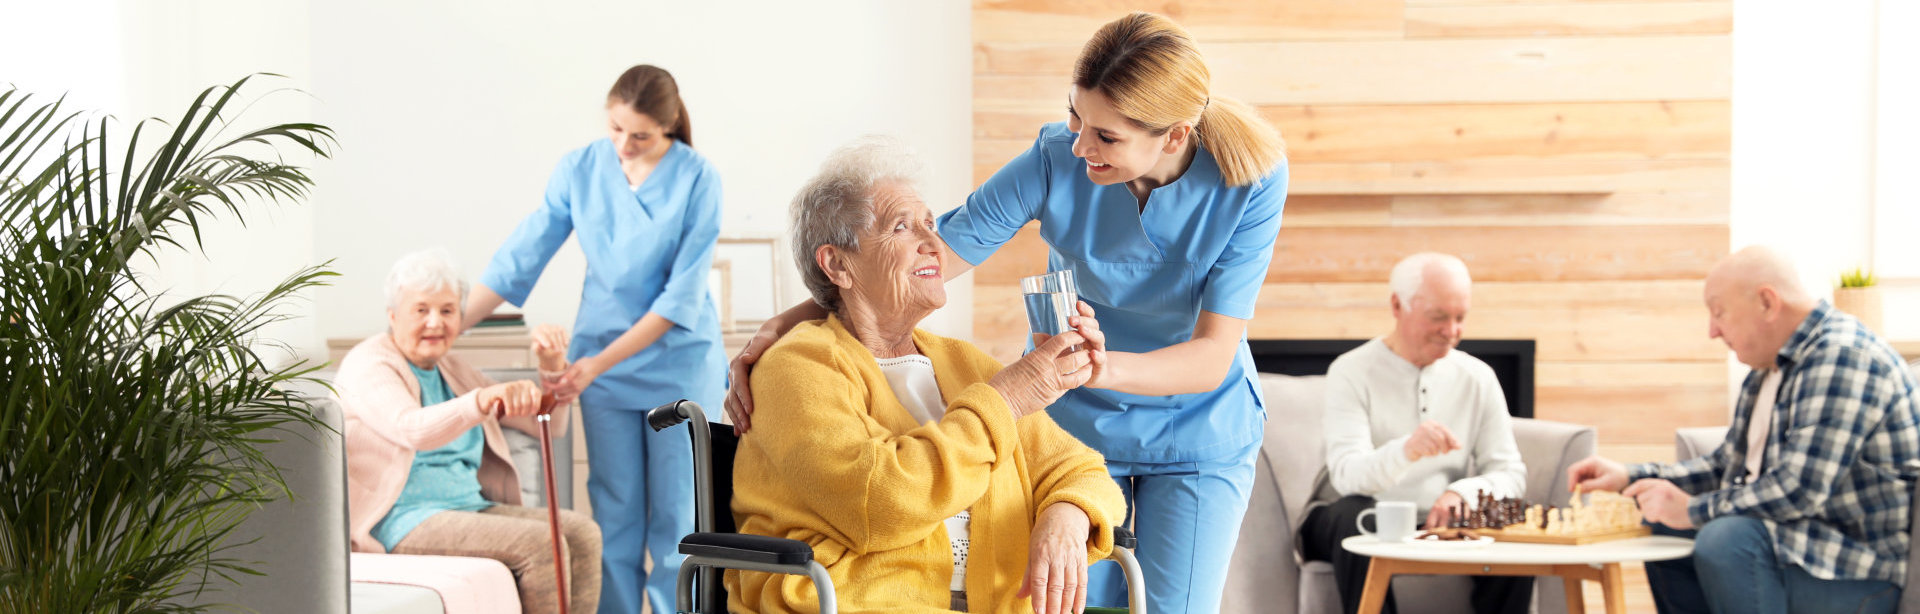 lady caregivers assisting the elderly people